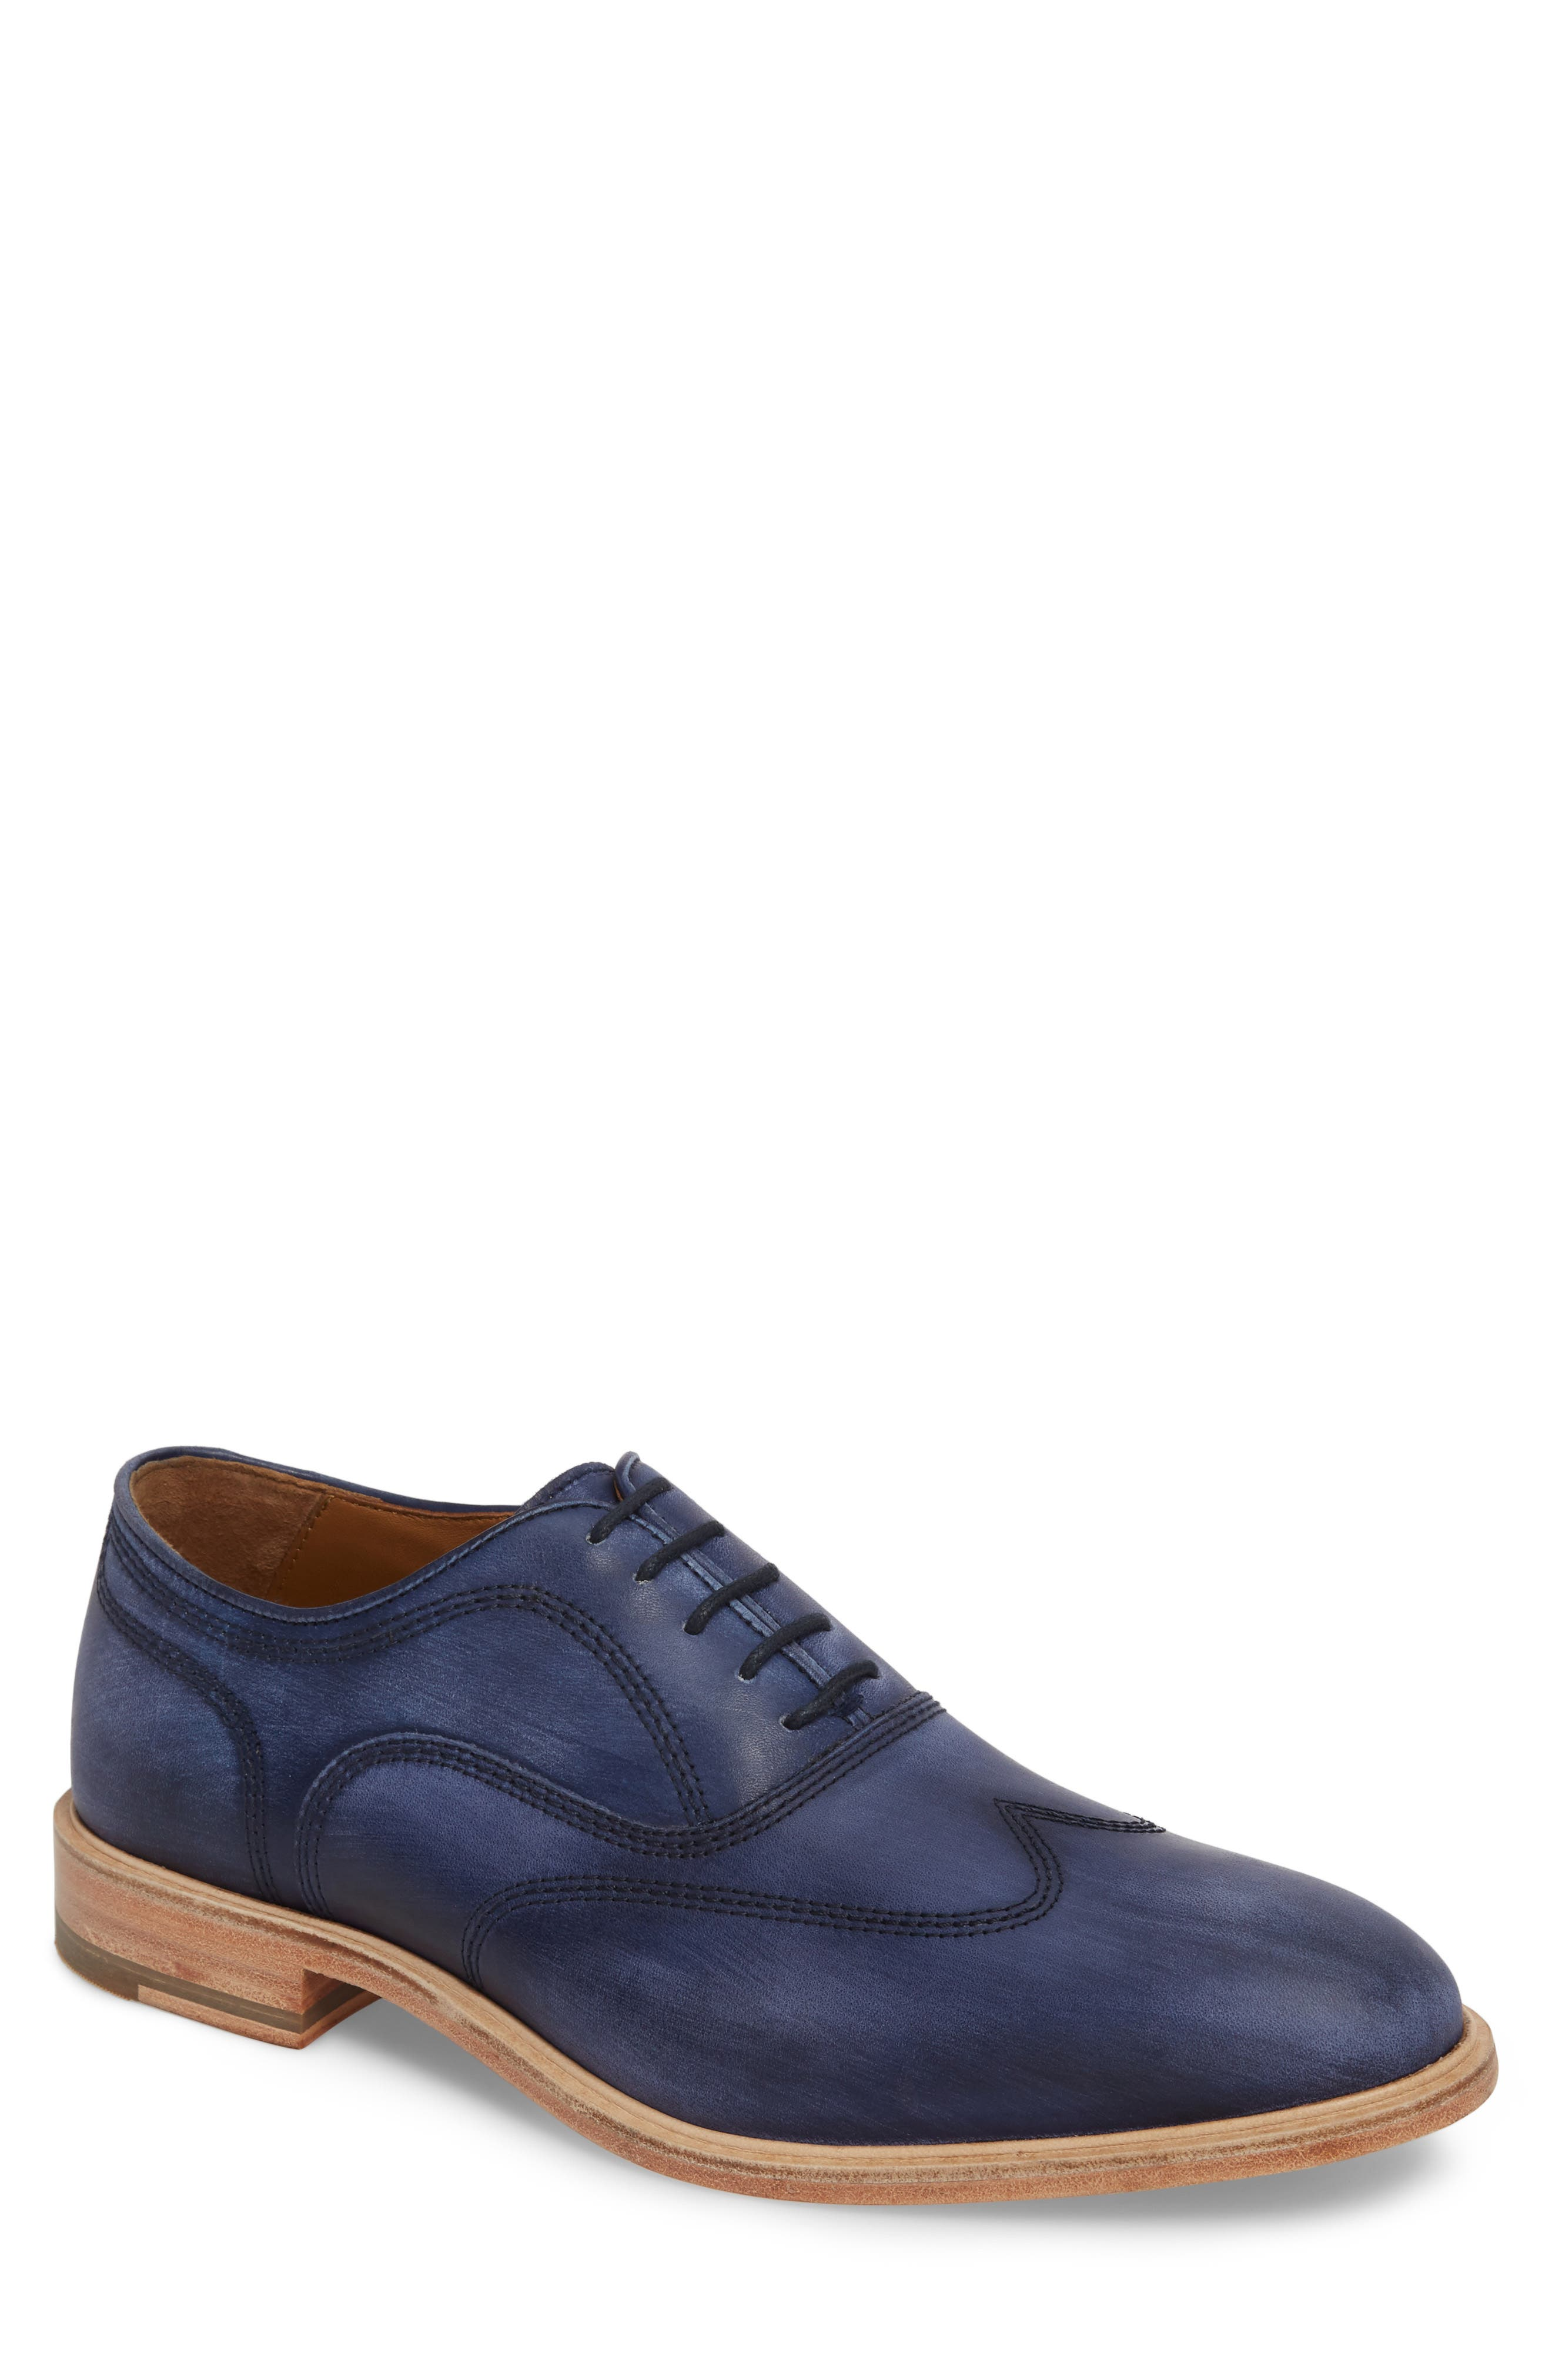 Chambliss Wingtip Oxford,                             Main thumbnail 1, color,                             Navy Leather